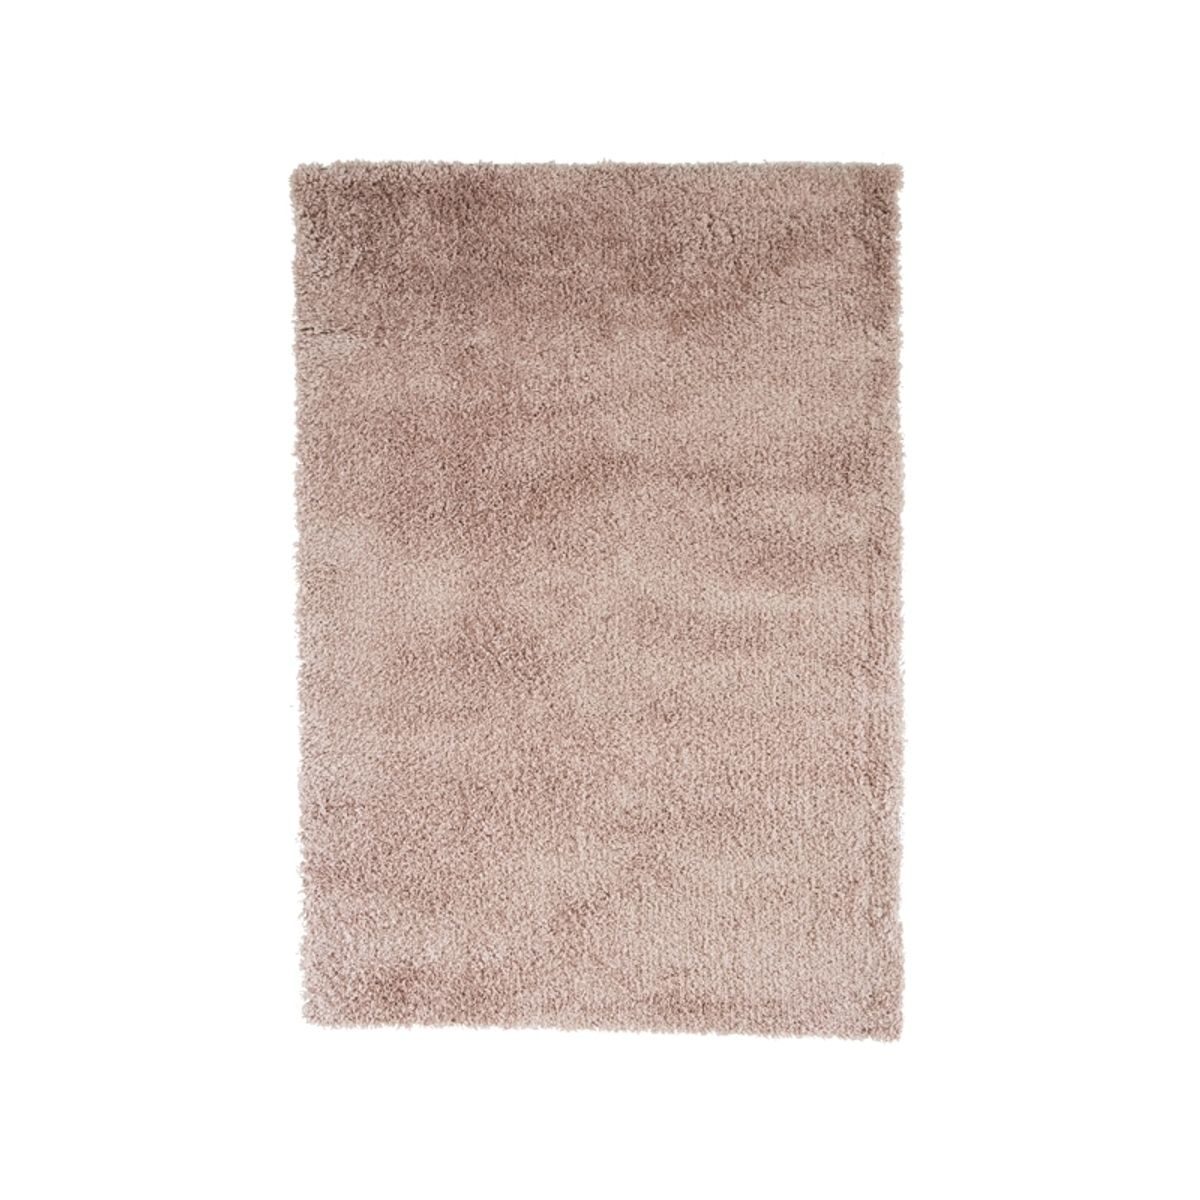 Tapis shaggy rose dragée Softy 120x170 cm